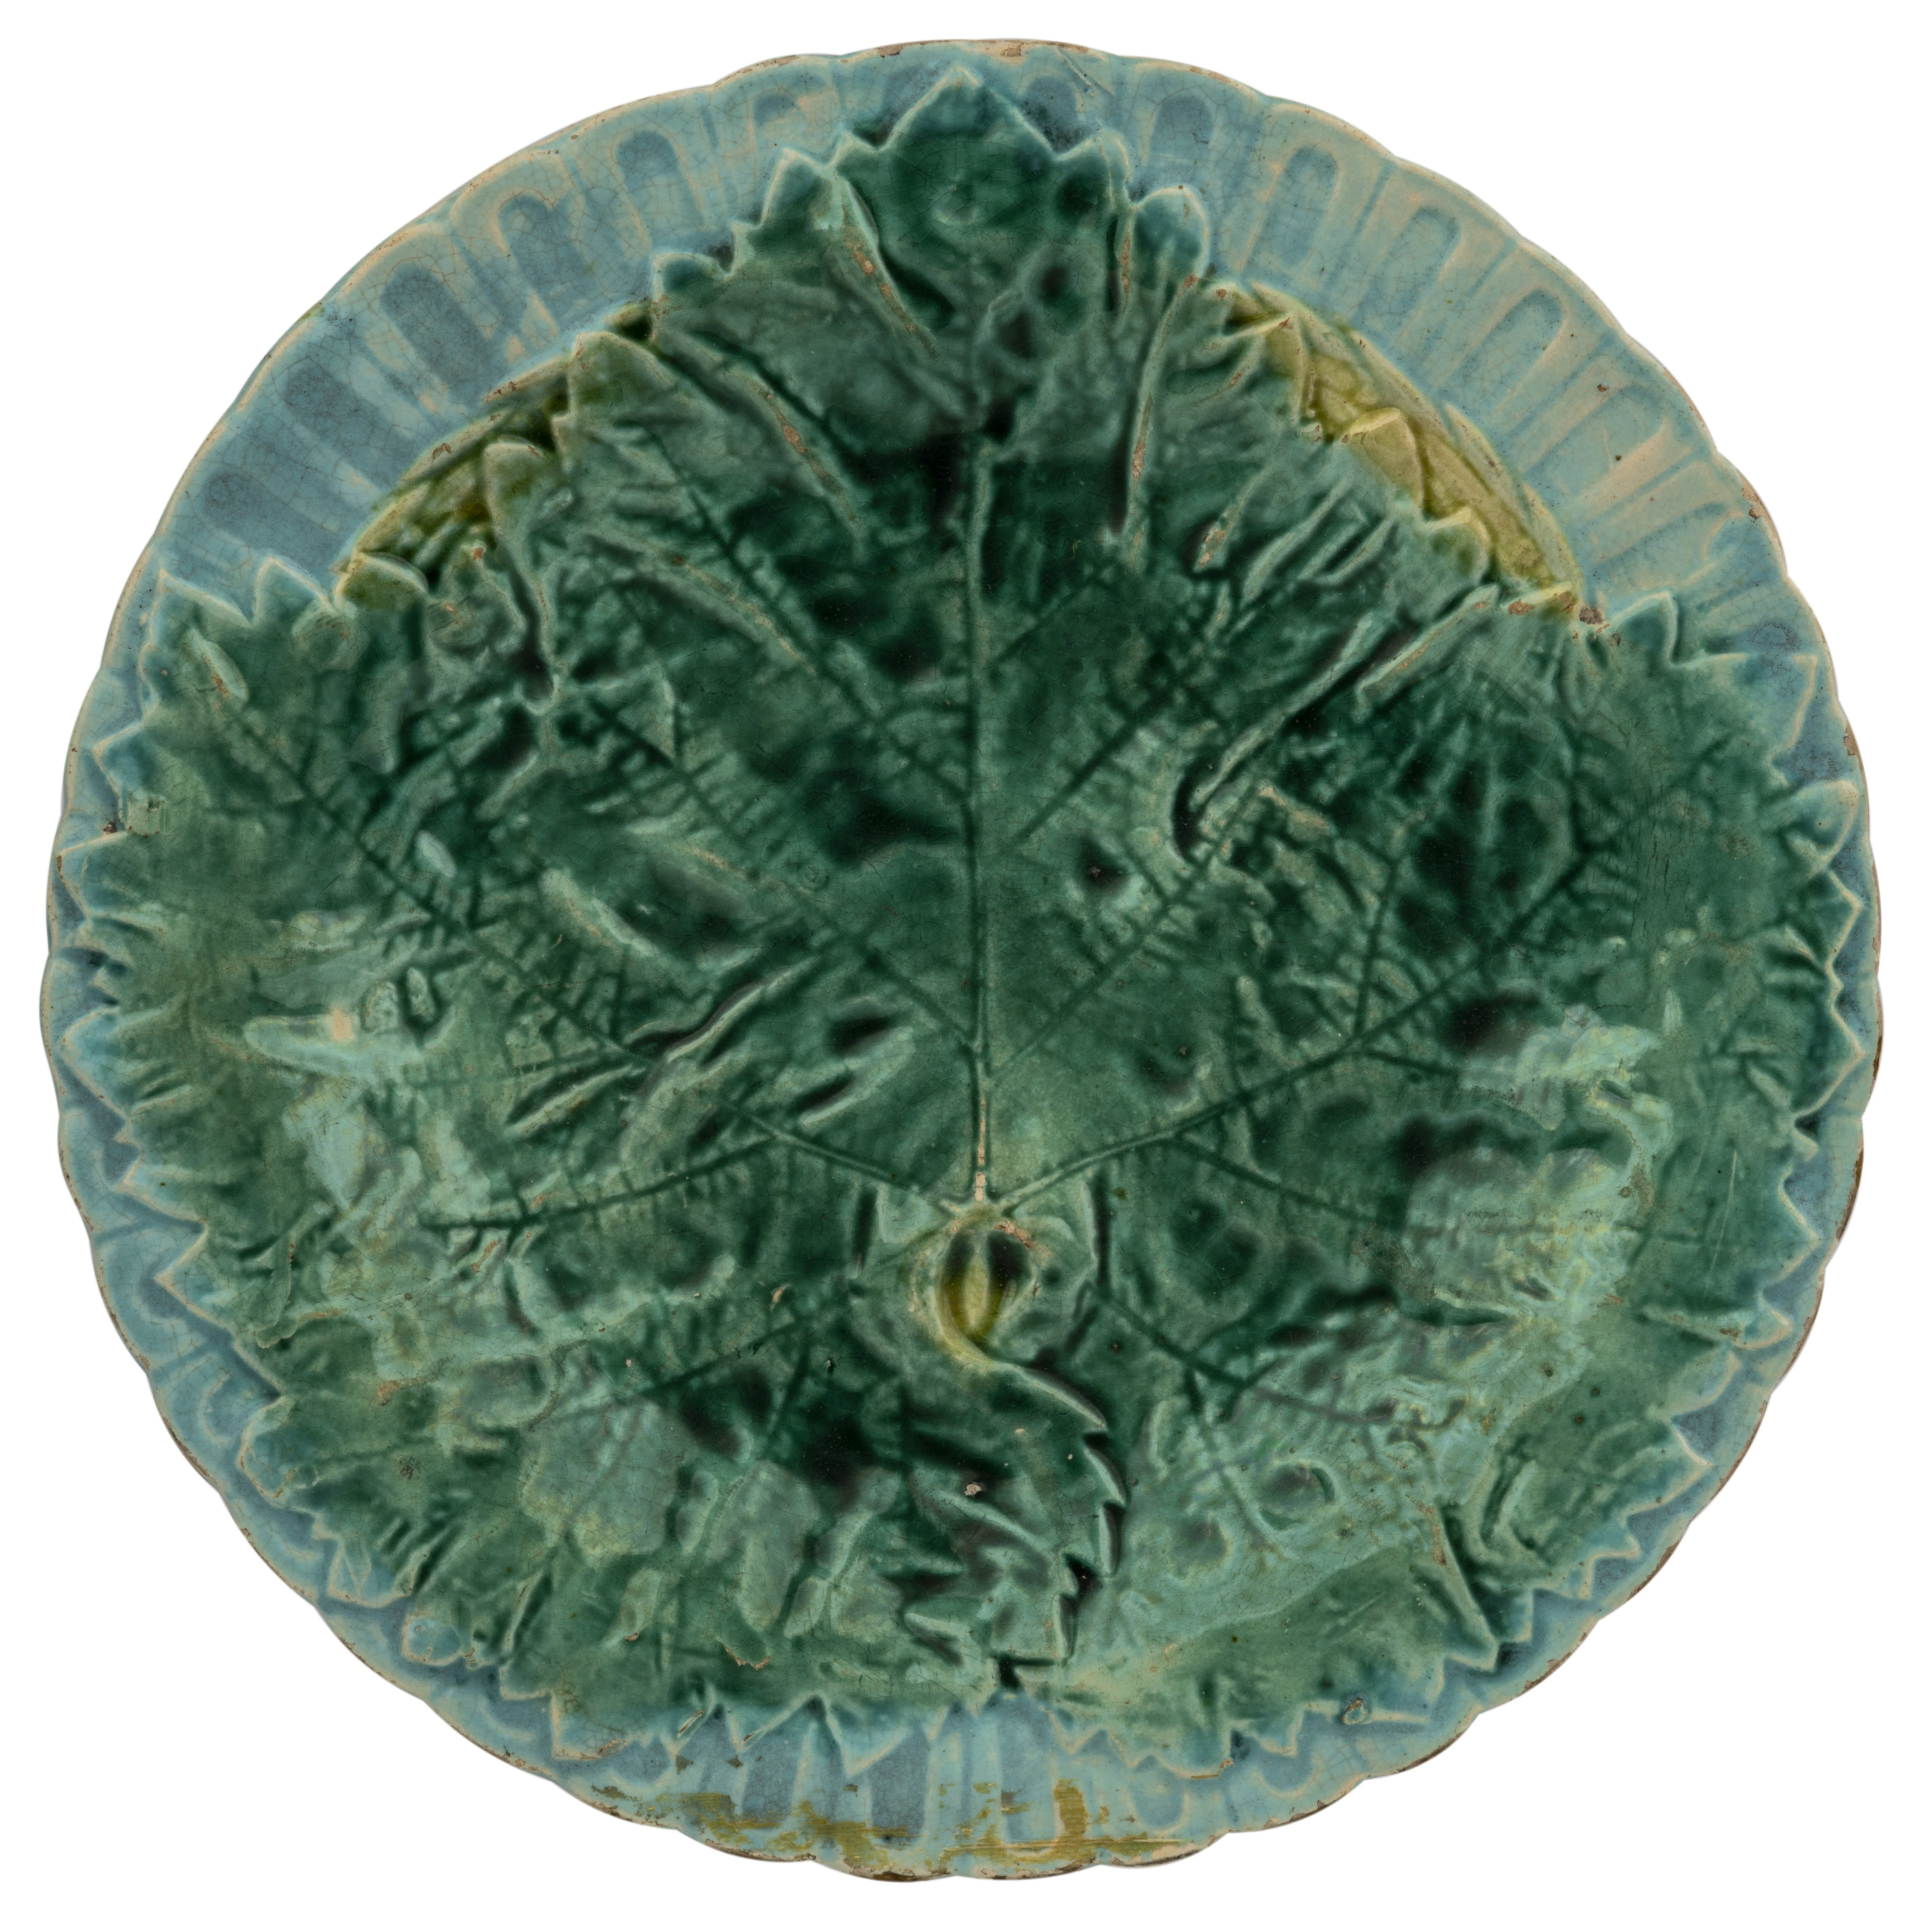 An Antique Lobbed Cabbage Leaf Majolica Pottery Dish